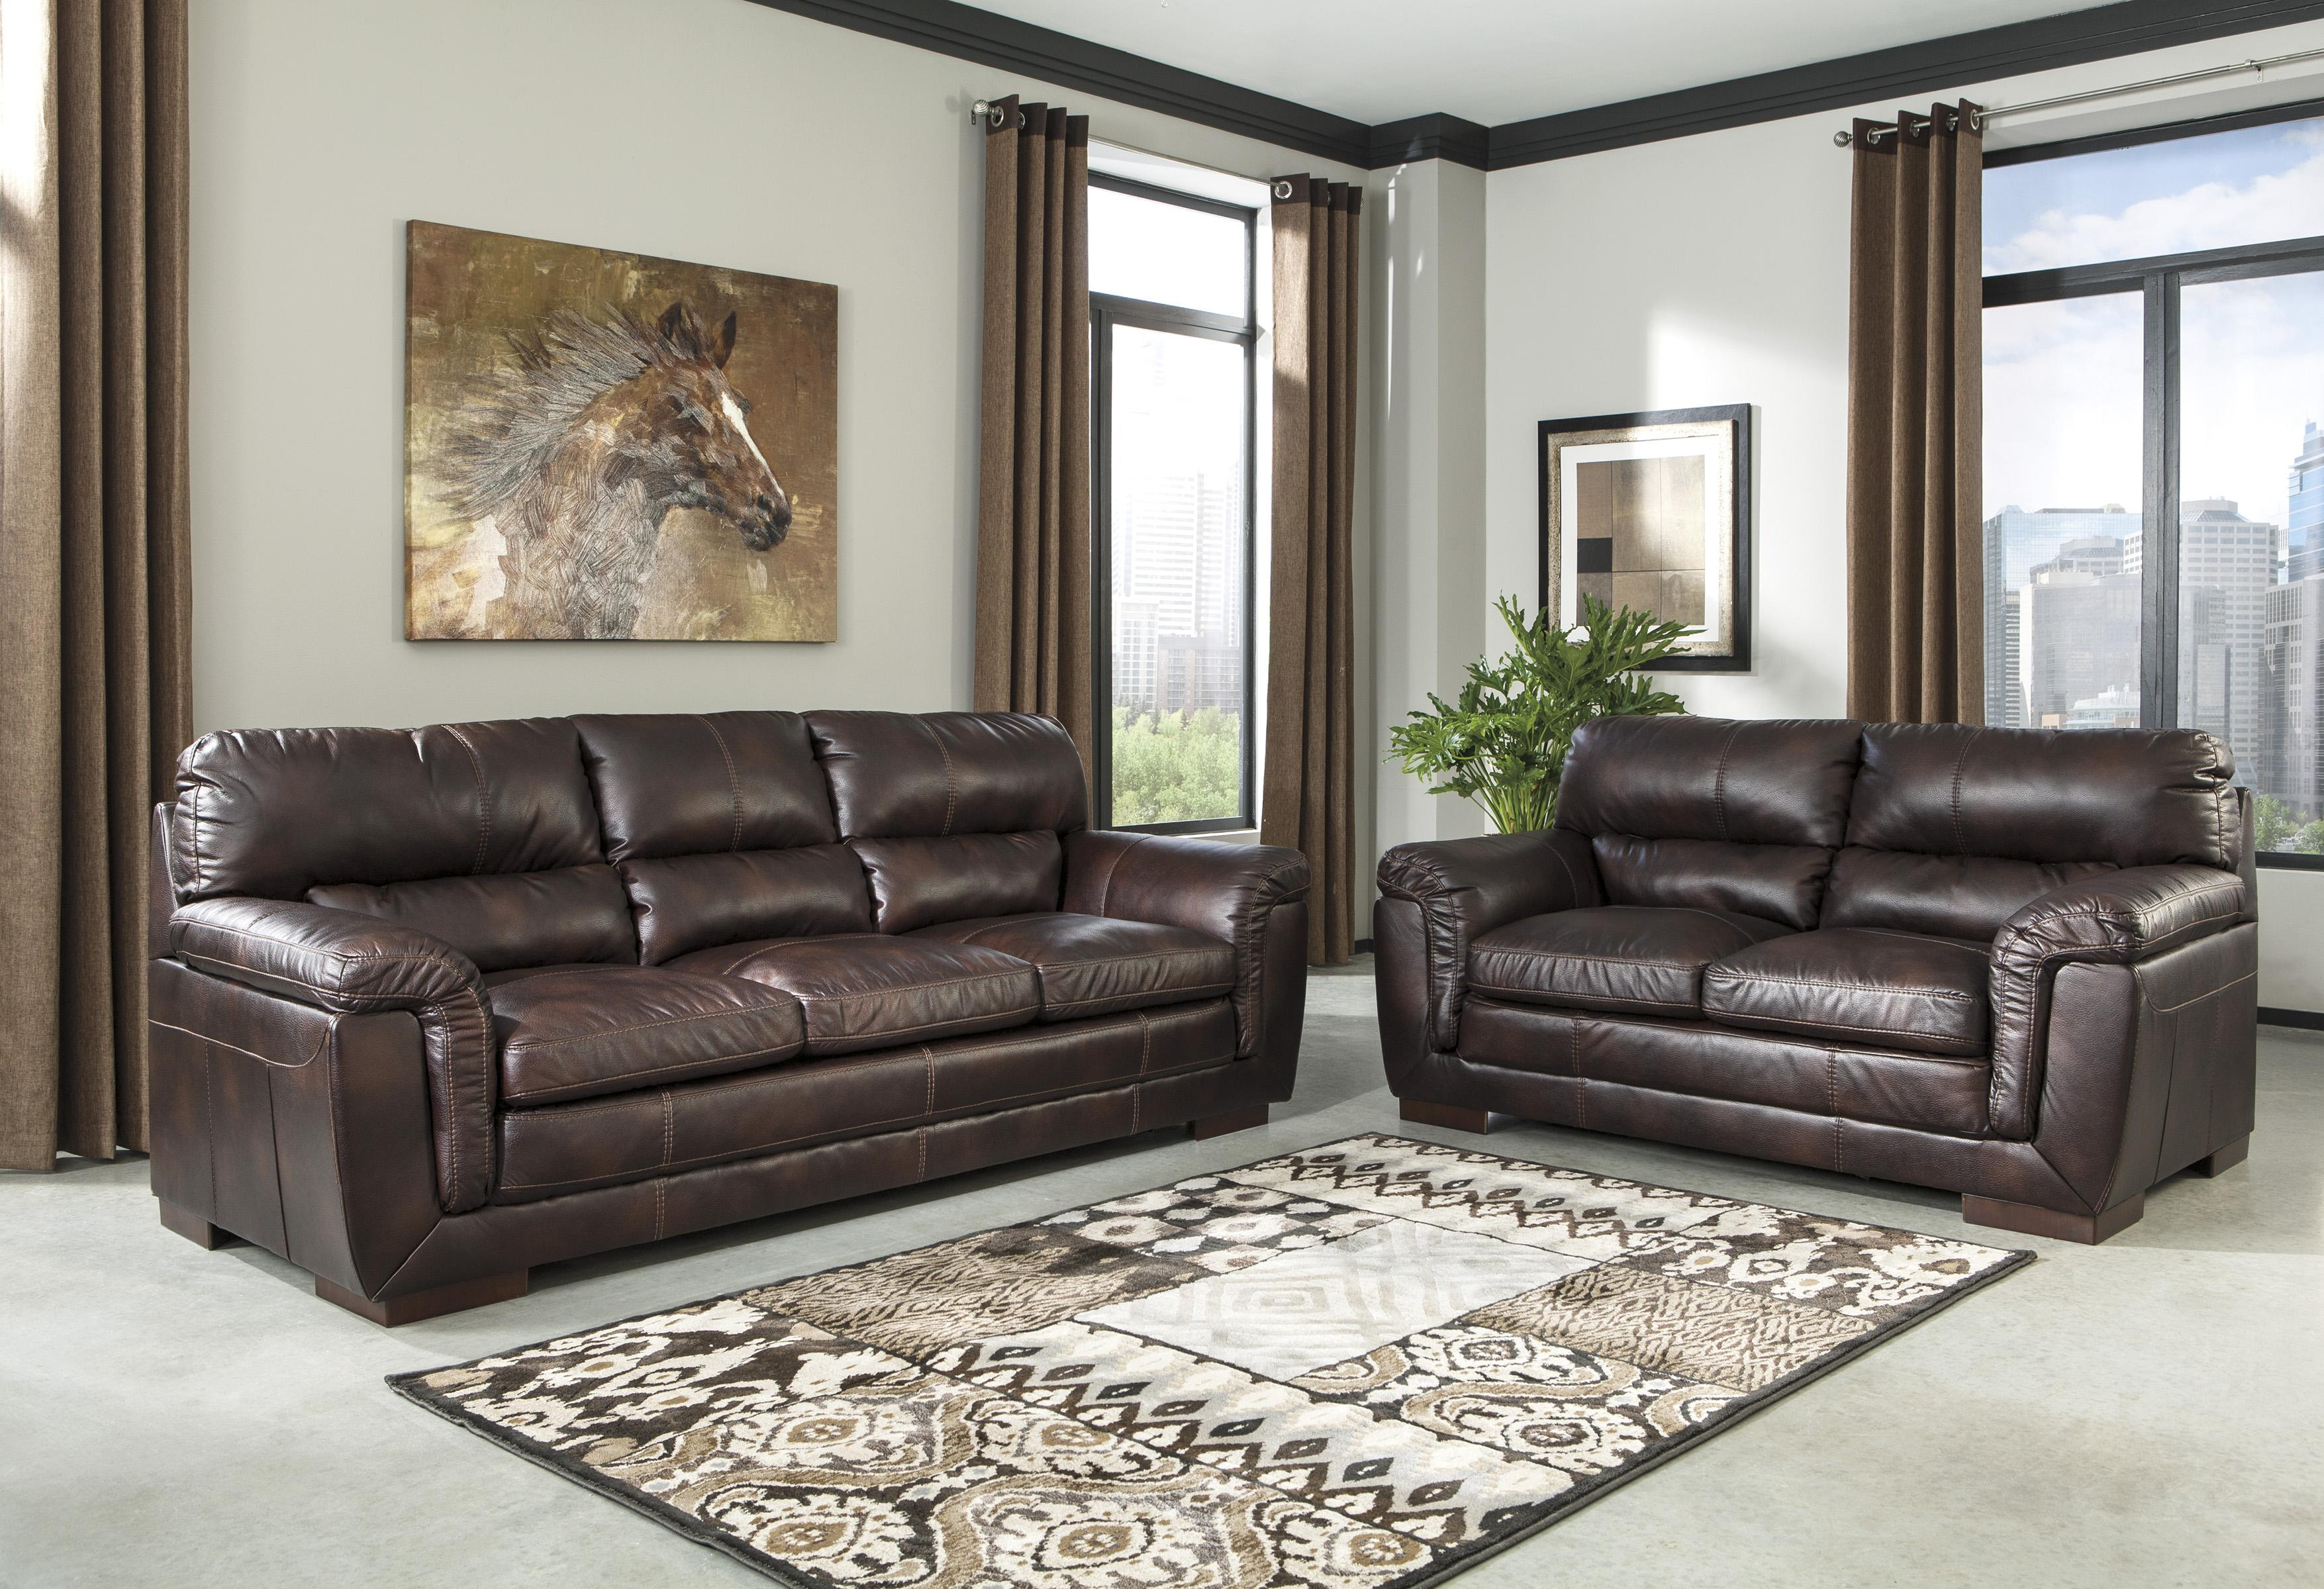 ashley furniture zelladore canyon stationary living room group ahfa upholstery group dealer locator